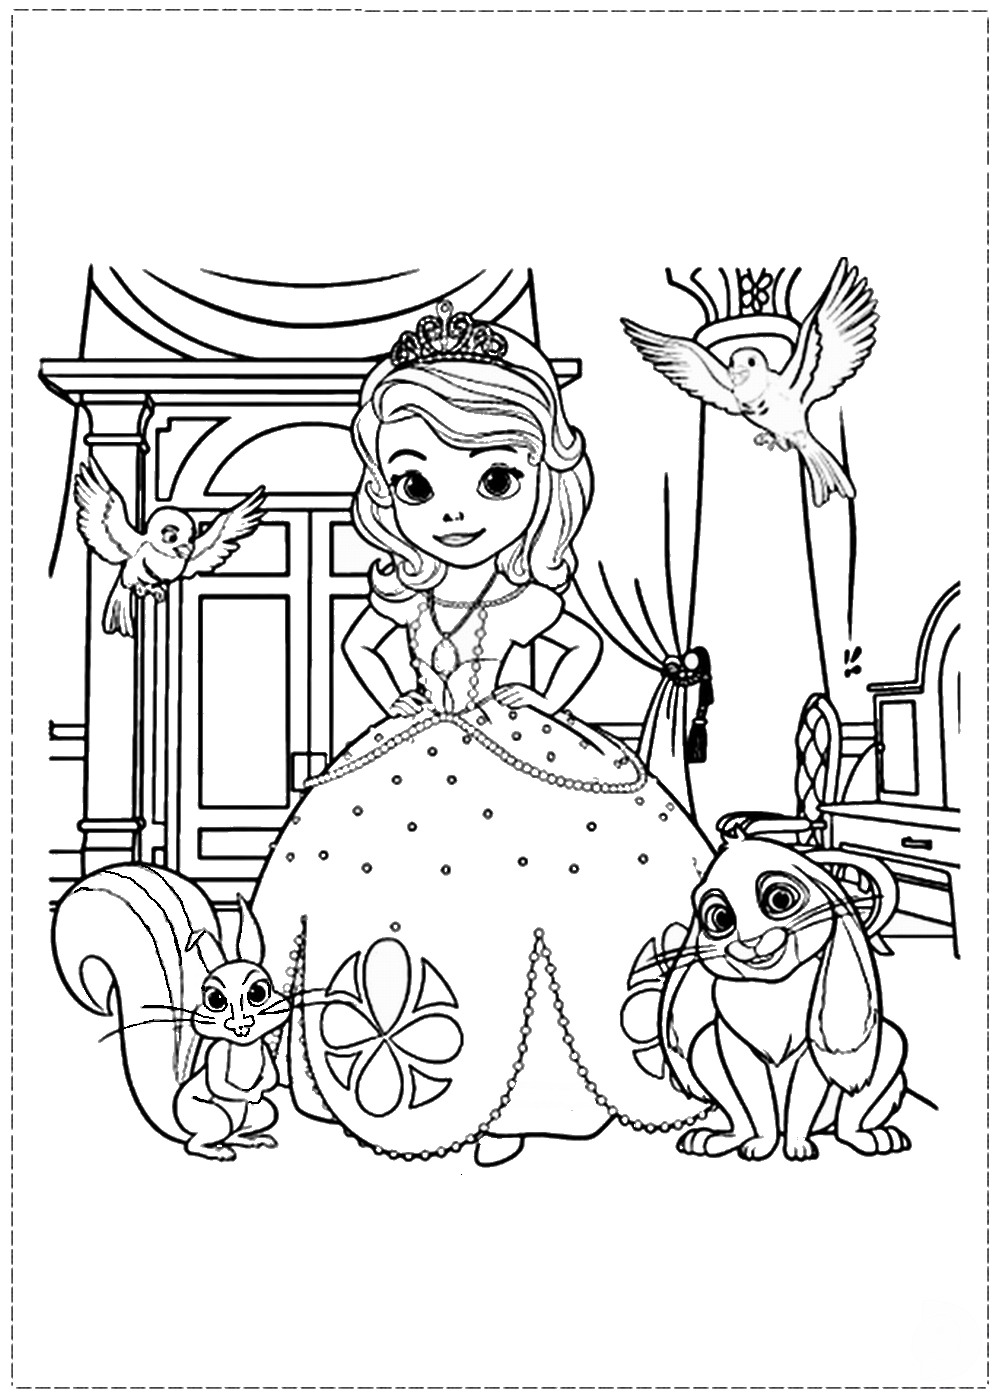 sofia pictures to color sofia first coloring pages coloring pages printablecom to pictures sofia color